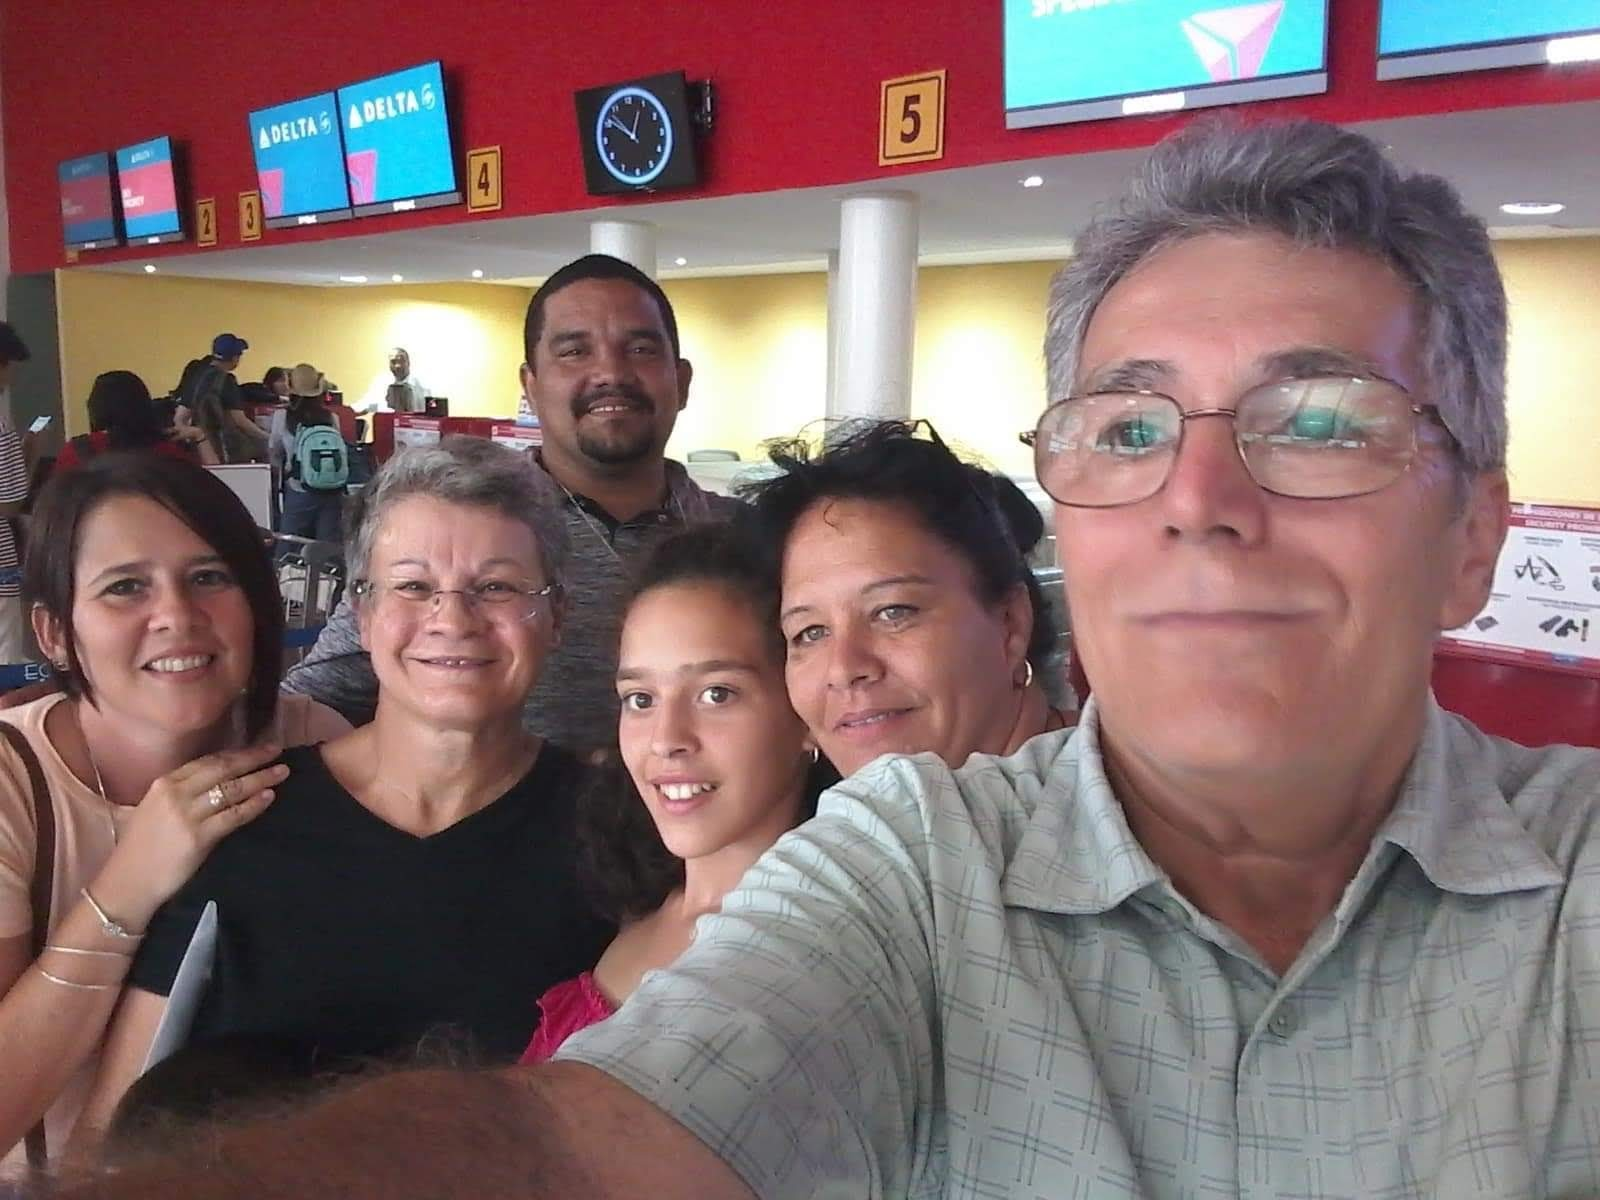 Our last picture in Cuba, with students and friends at the Habana Airport.